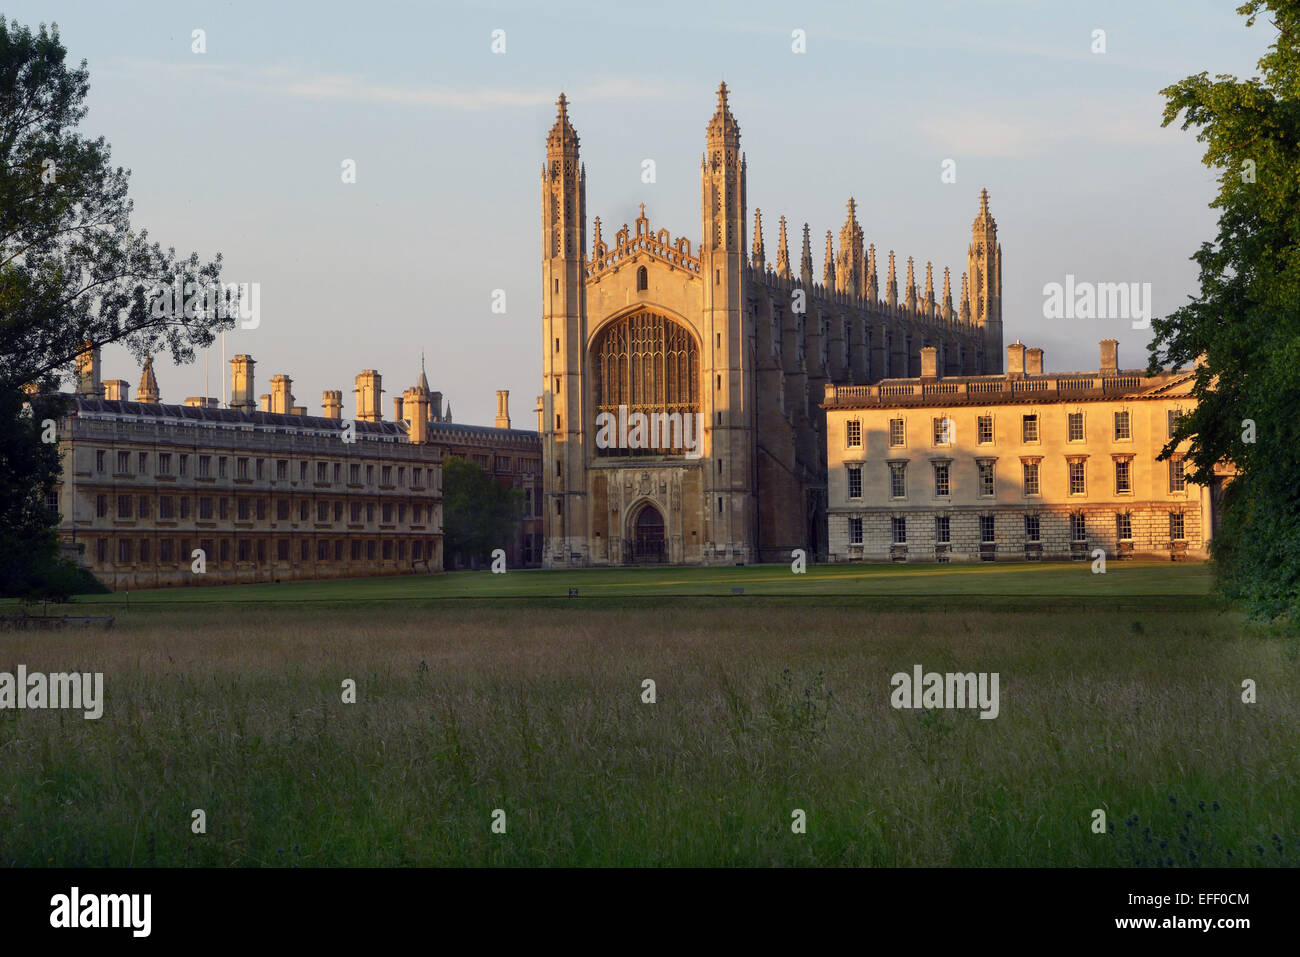 Kings College Chapel  Cambridge  taken across the Back Lawn with the Gibbs building right, and Clare College left. - Stock Image